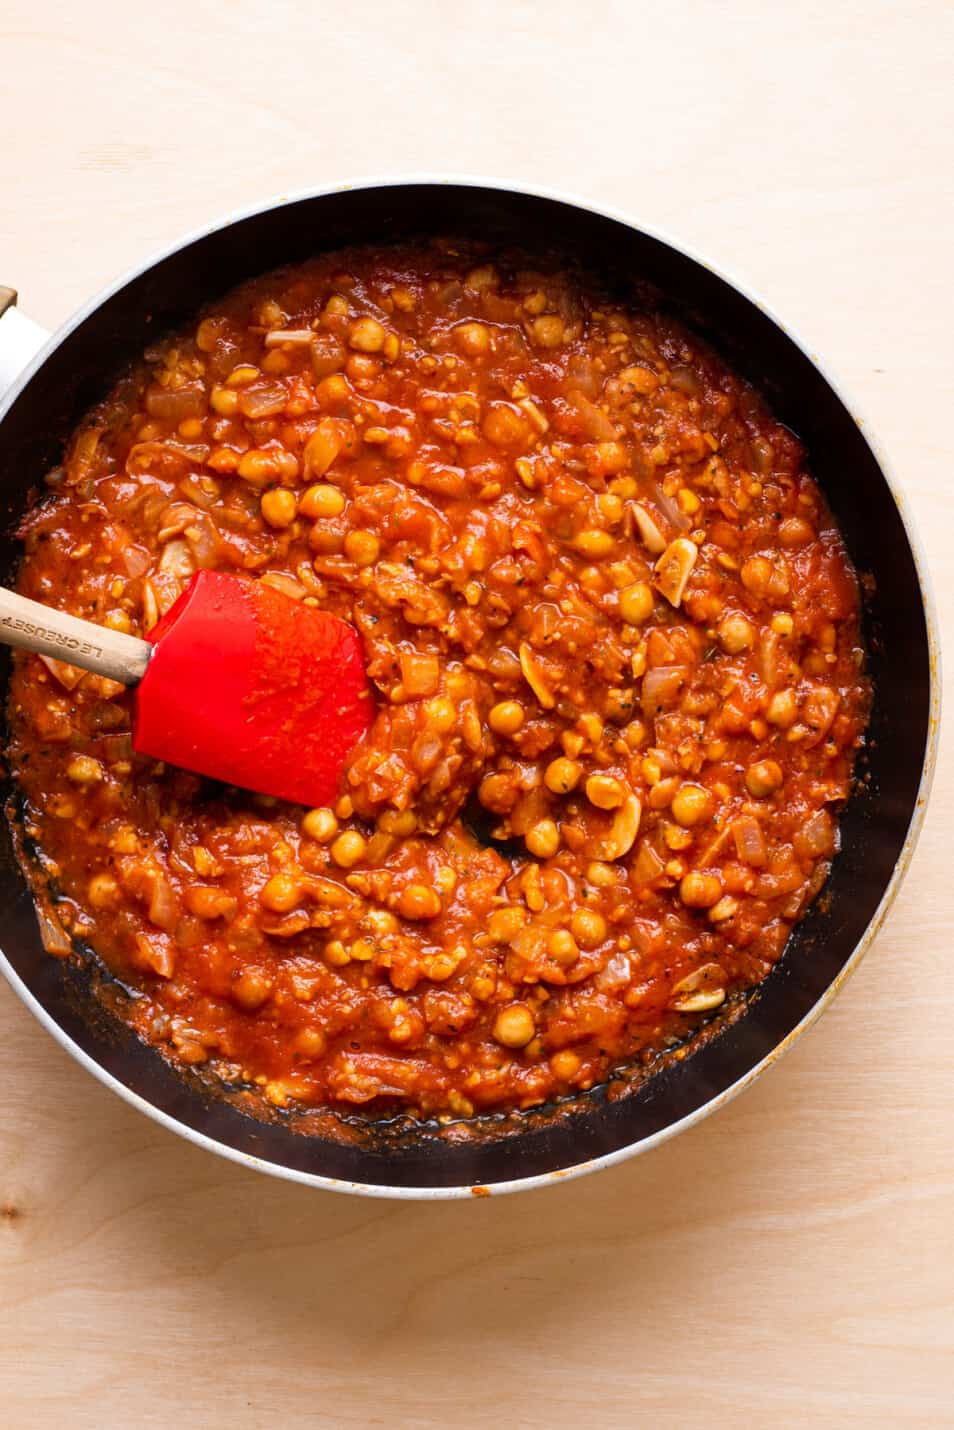 Chickpea tomato sauce in a skillet.